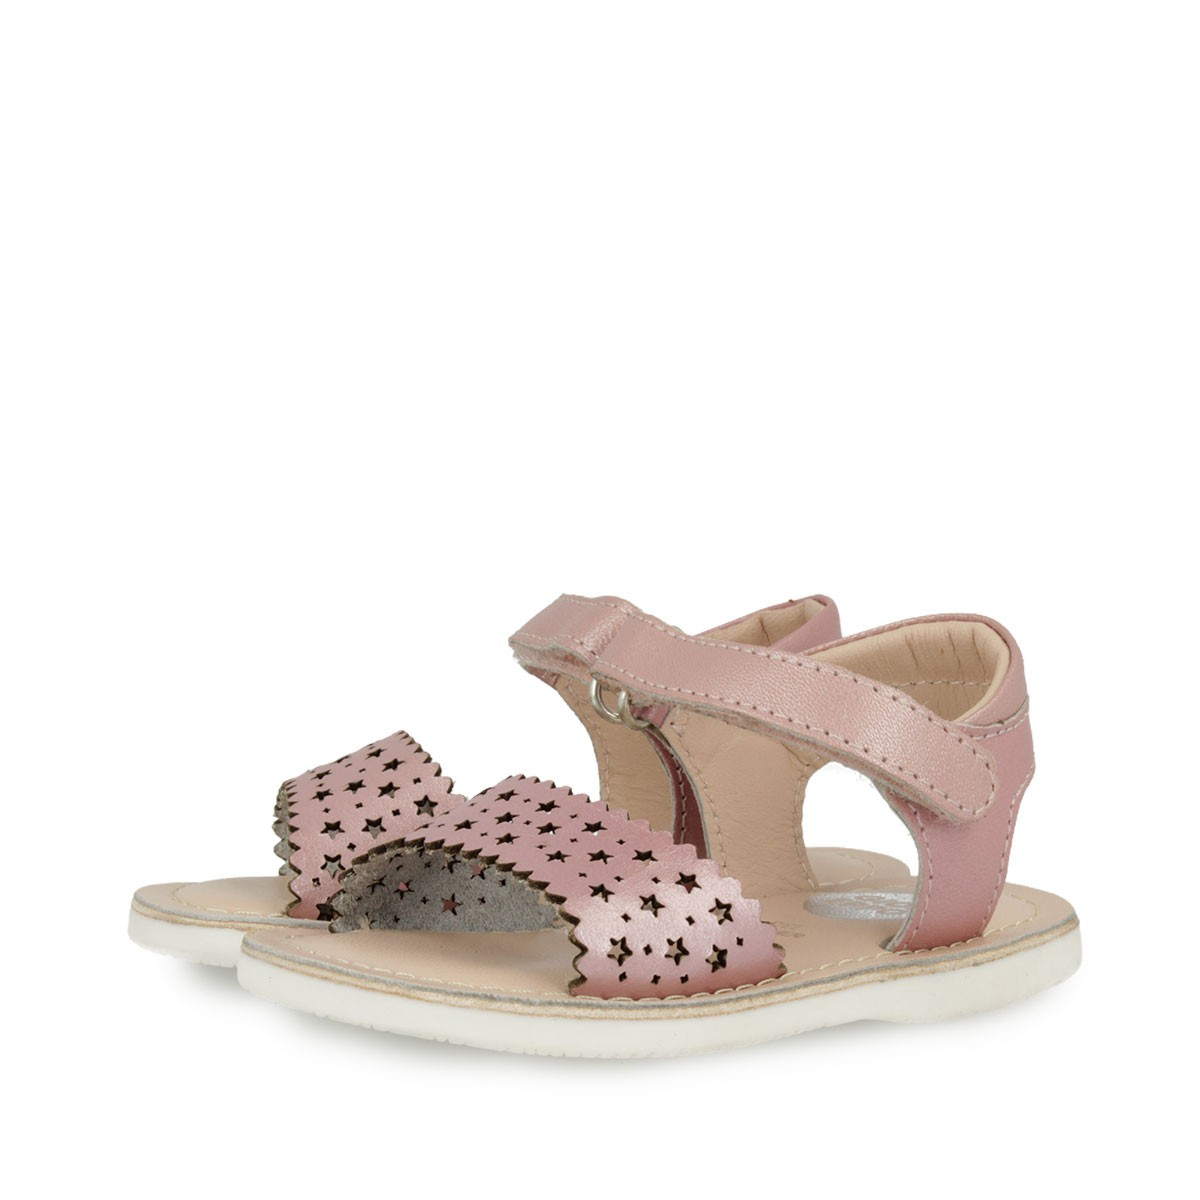 lowest price 5ab8b 920fb Gioseppo Astral - Girls-Sandals : Fussy Feet | Shop Kids ...